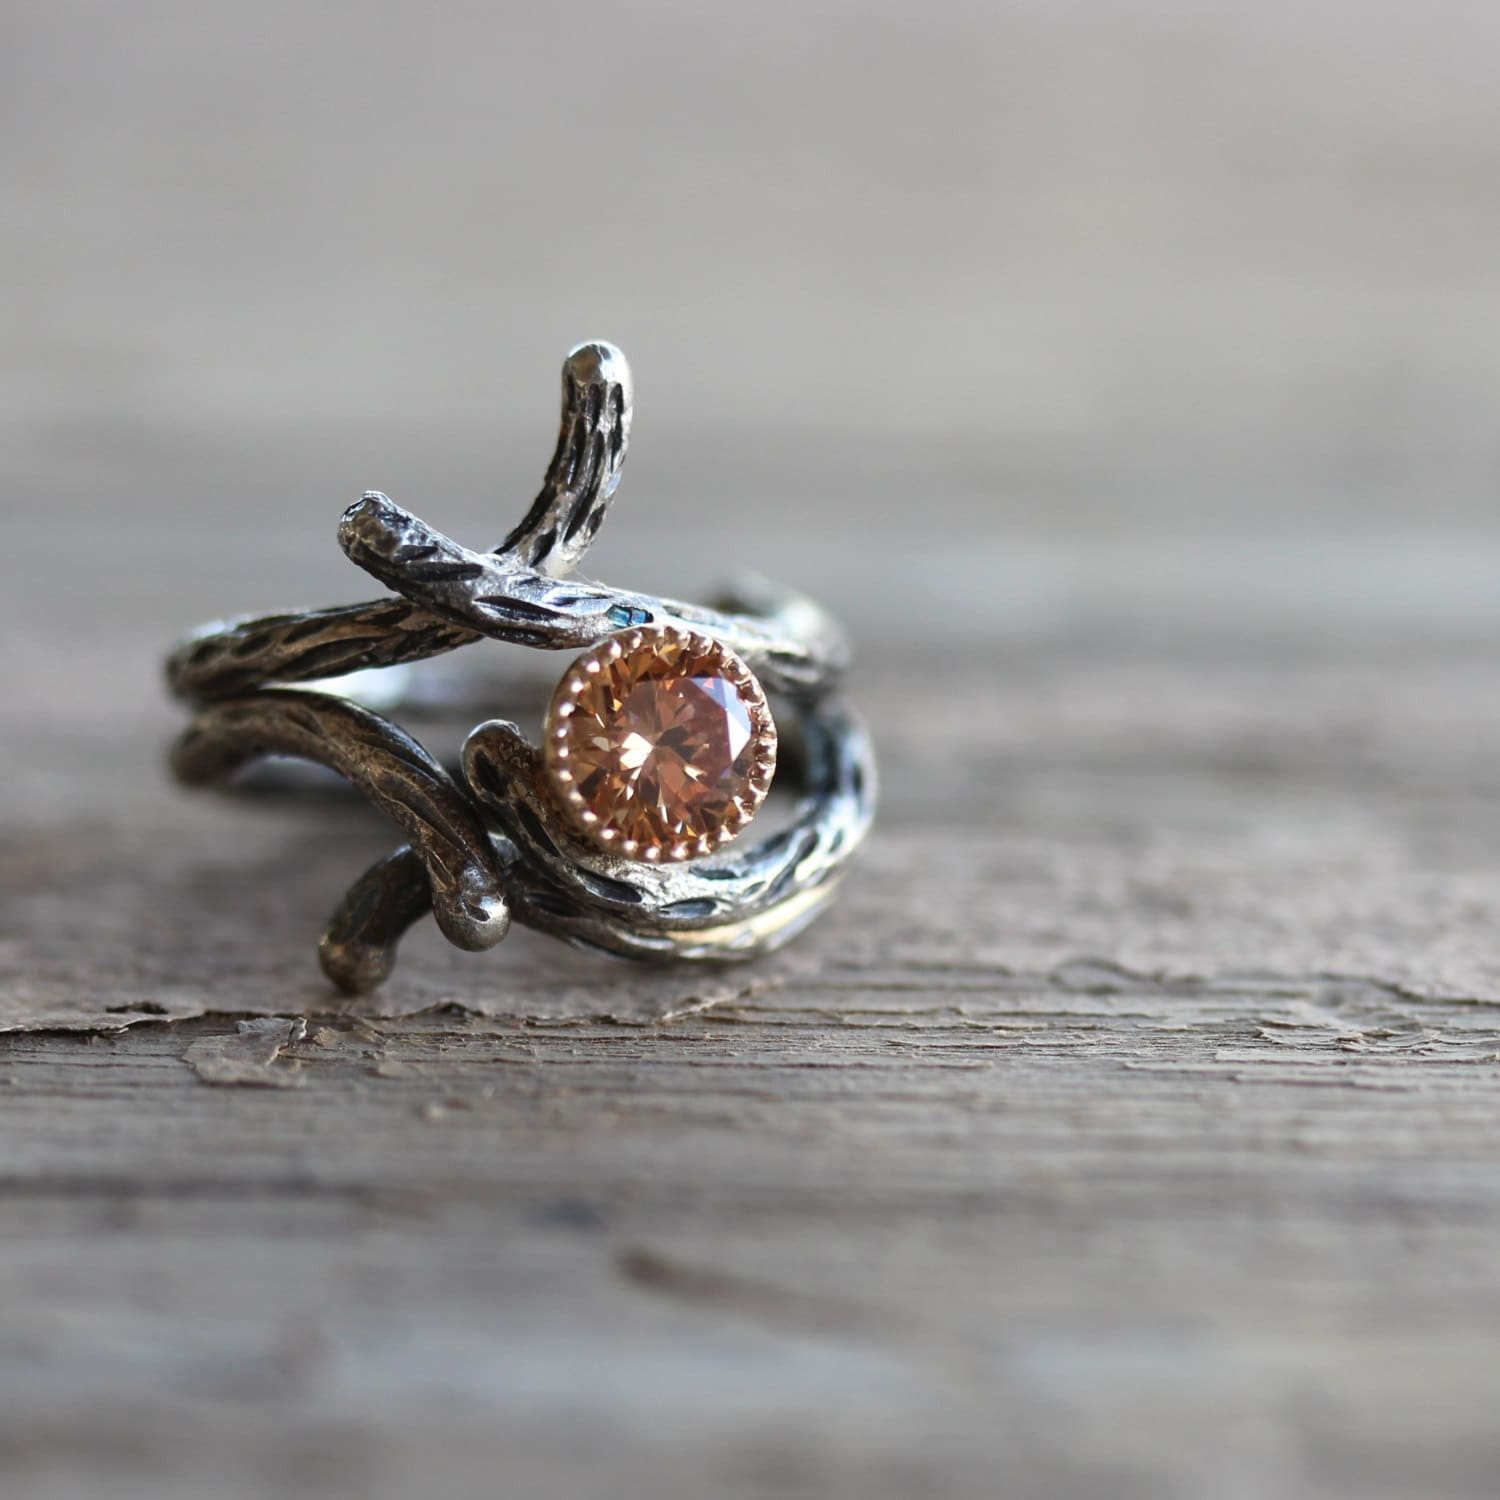 Branch Engagement Wedding Ring Set Silver 14K Yellow Gold Cz Peach Colored Sparkly Rustic Tree Twig Bridal - Sparkle Bark & Shadow